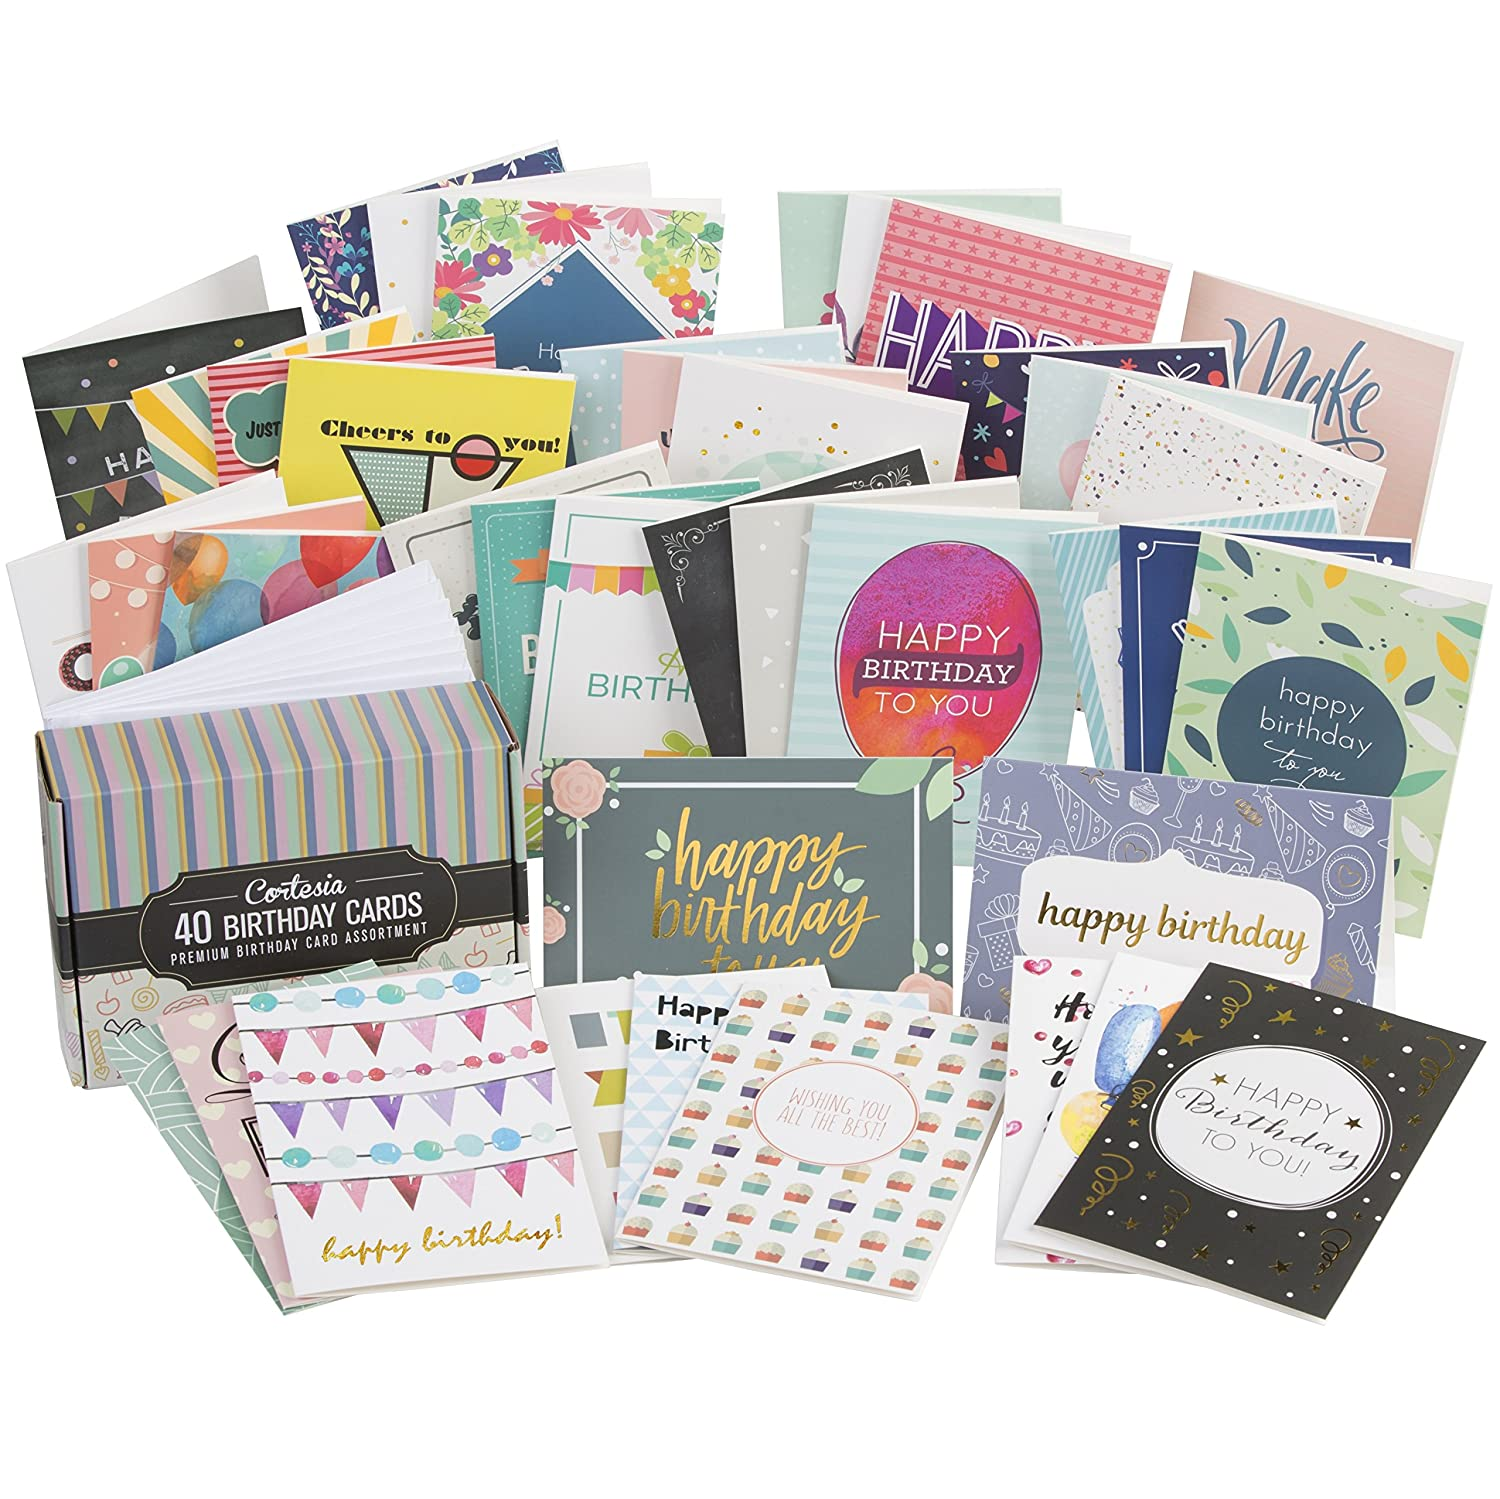 Amazon Cortesia Box Set of 40 Assorted Birthday Cards – Set of Birthday Cards